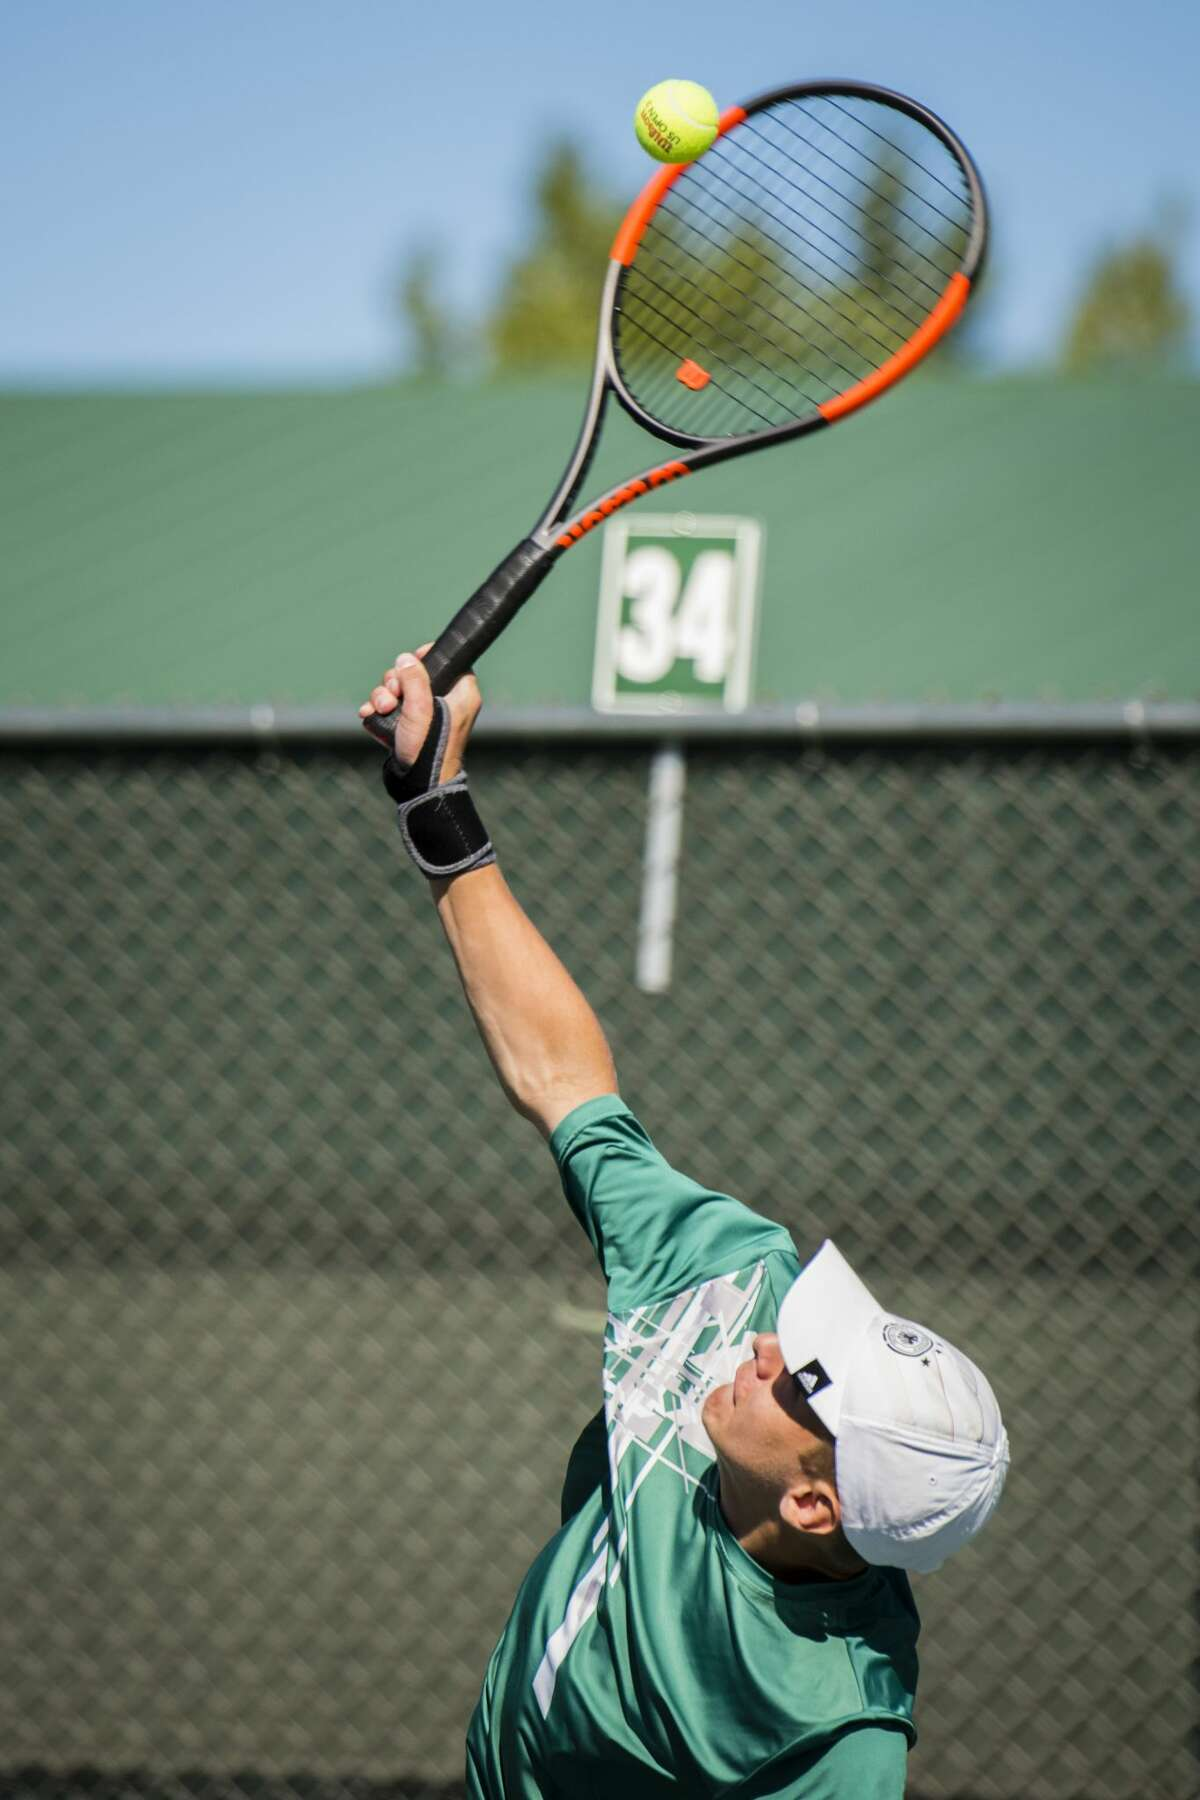 Senior Kevin Kraef, half of Dow's number three doubles pair, serves the ball during the Saginaw Valley Boys Tennis Tournament on Thursday, Oct. 5, 2017at the Greater Midland Tennis Center. (Danielle McGrew Tenbusch/for the Daily News)